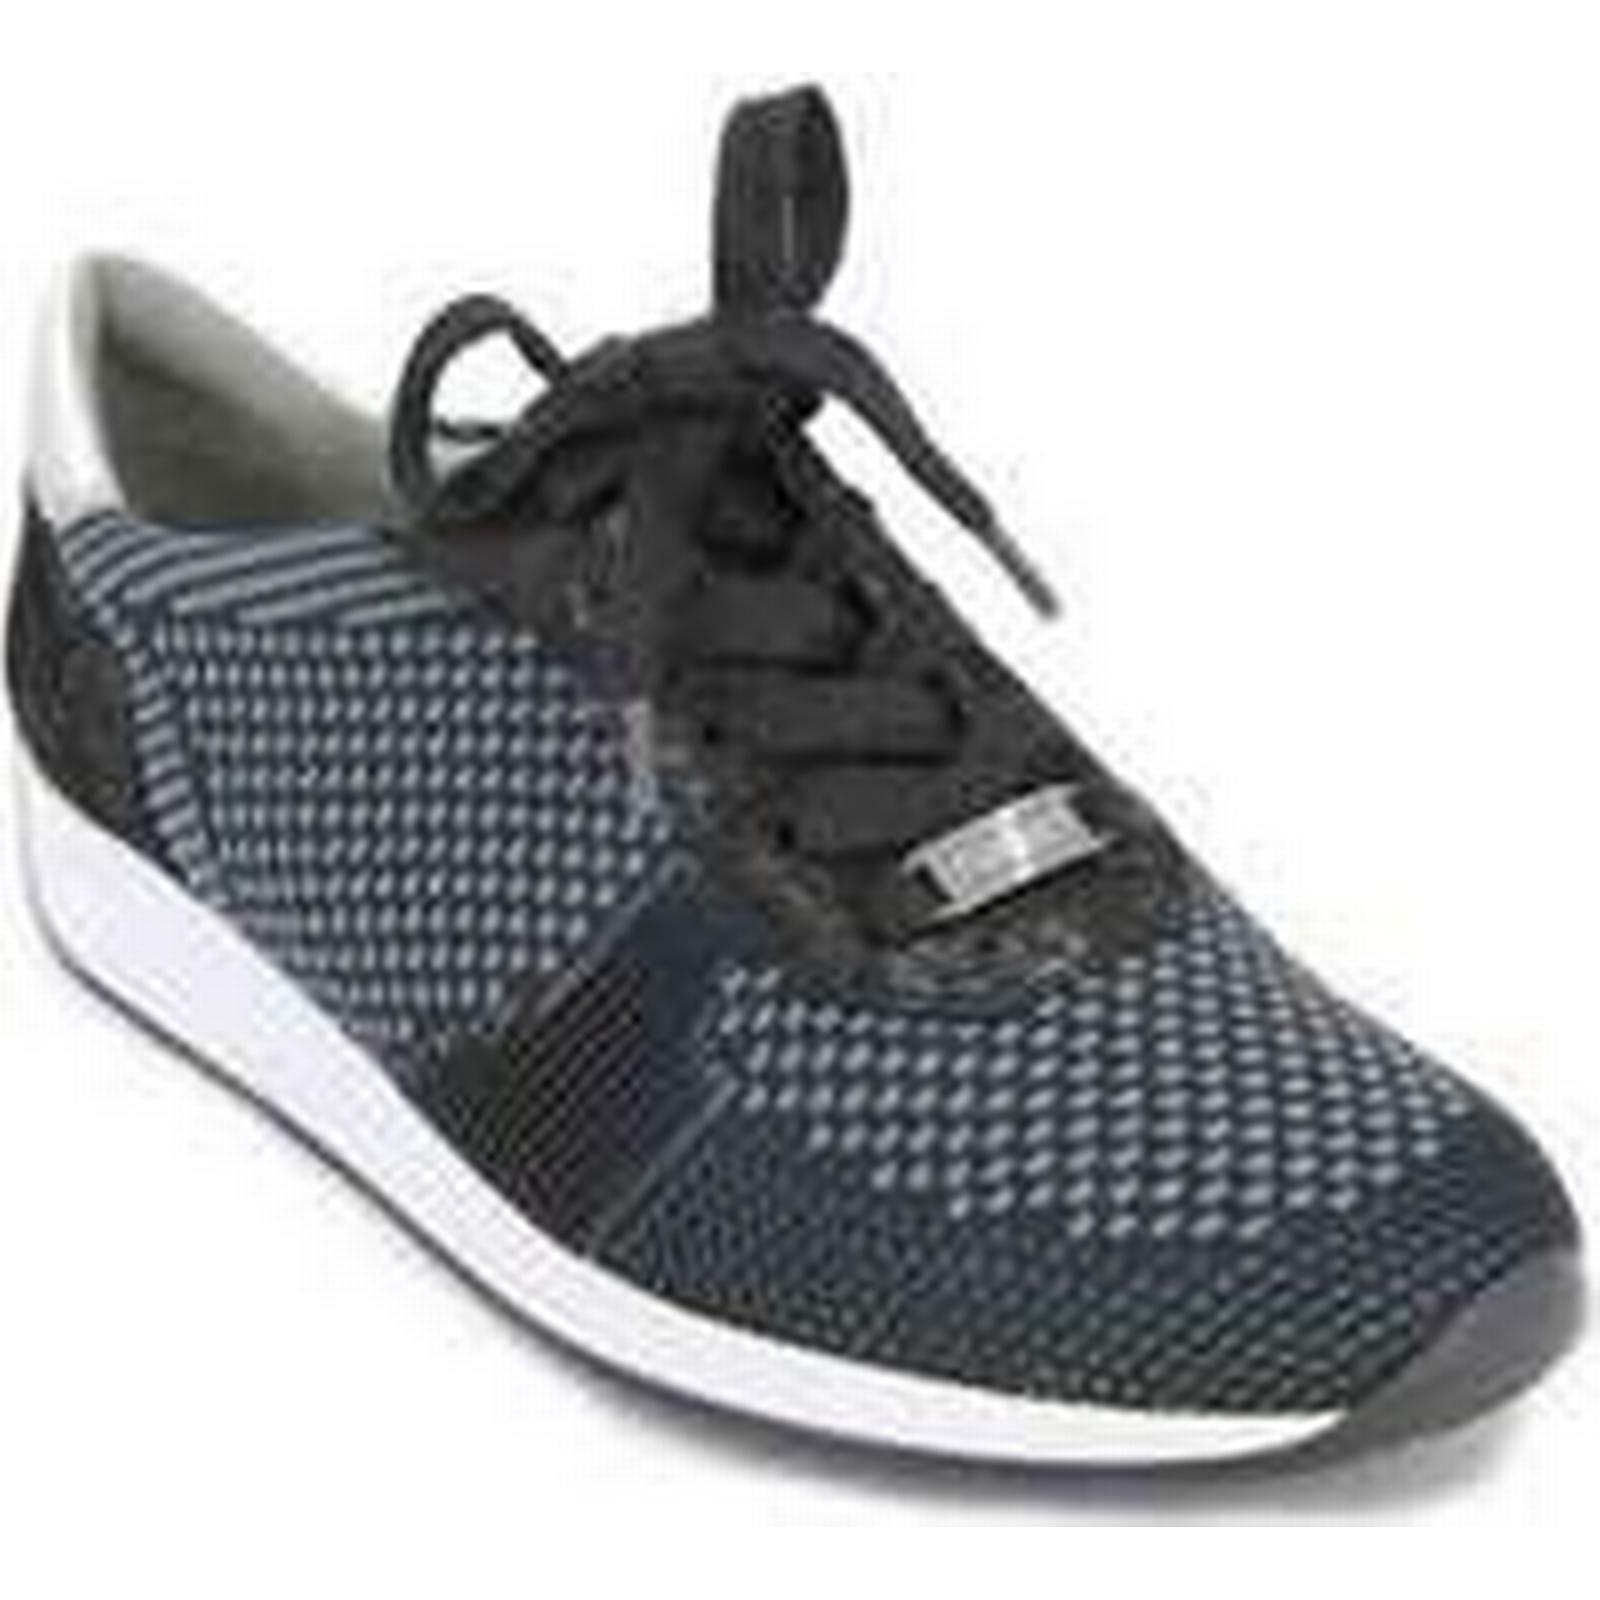 Spartoo.co.uk Sneakers Ara Fusion4 12-34027 Women's Sneakers Spartoo.co.uk women's Shoes (Trainers) in Black a754bd